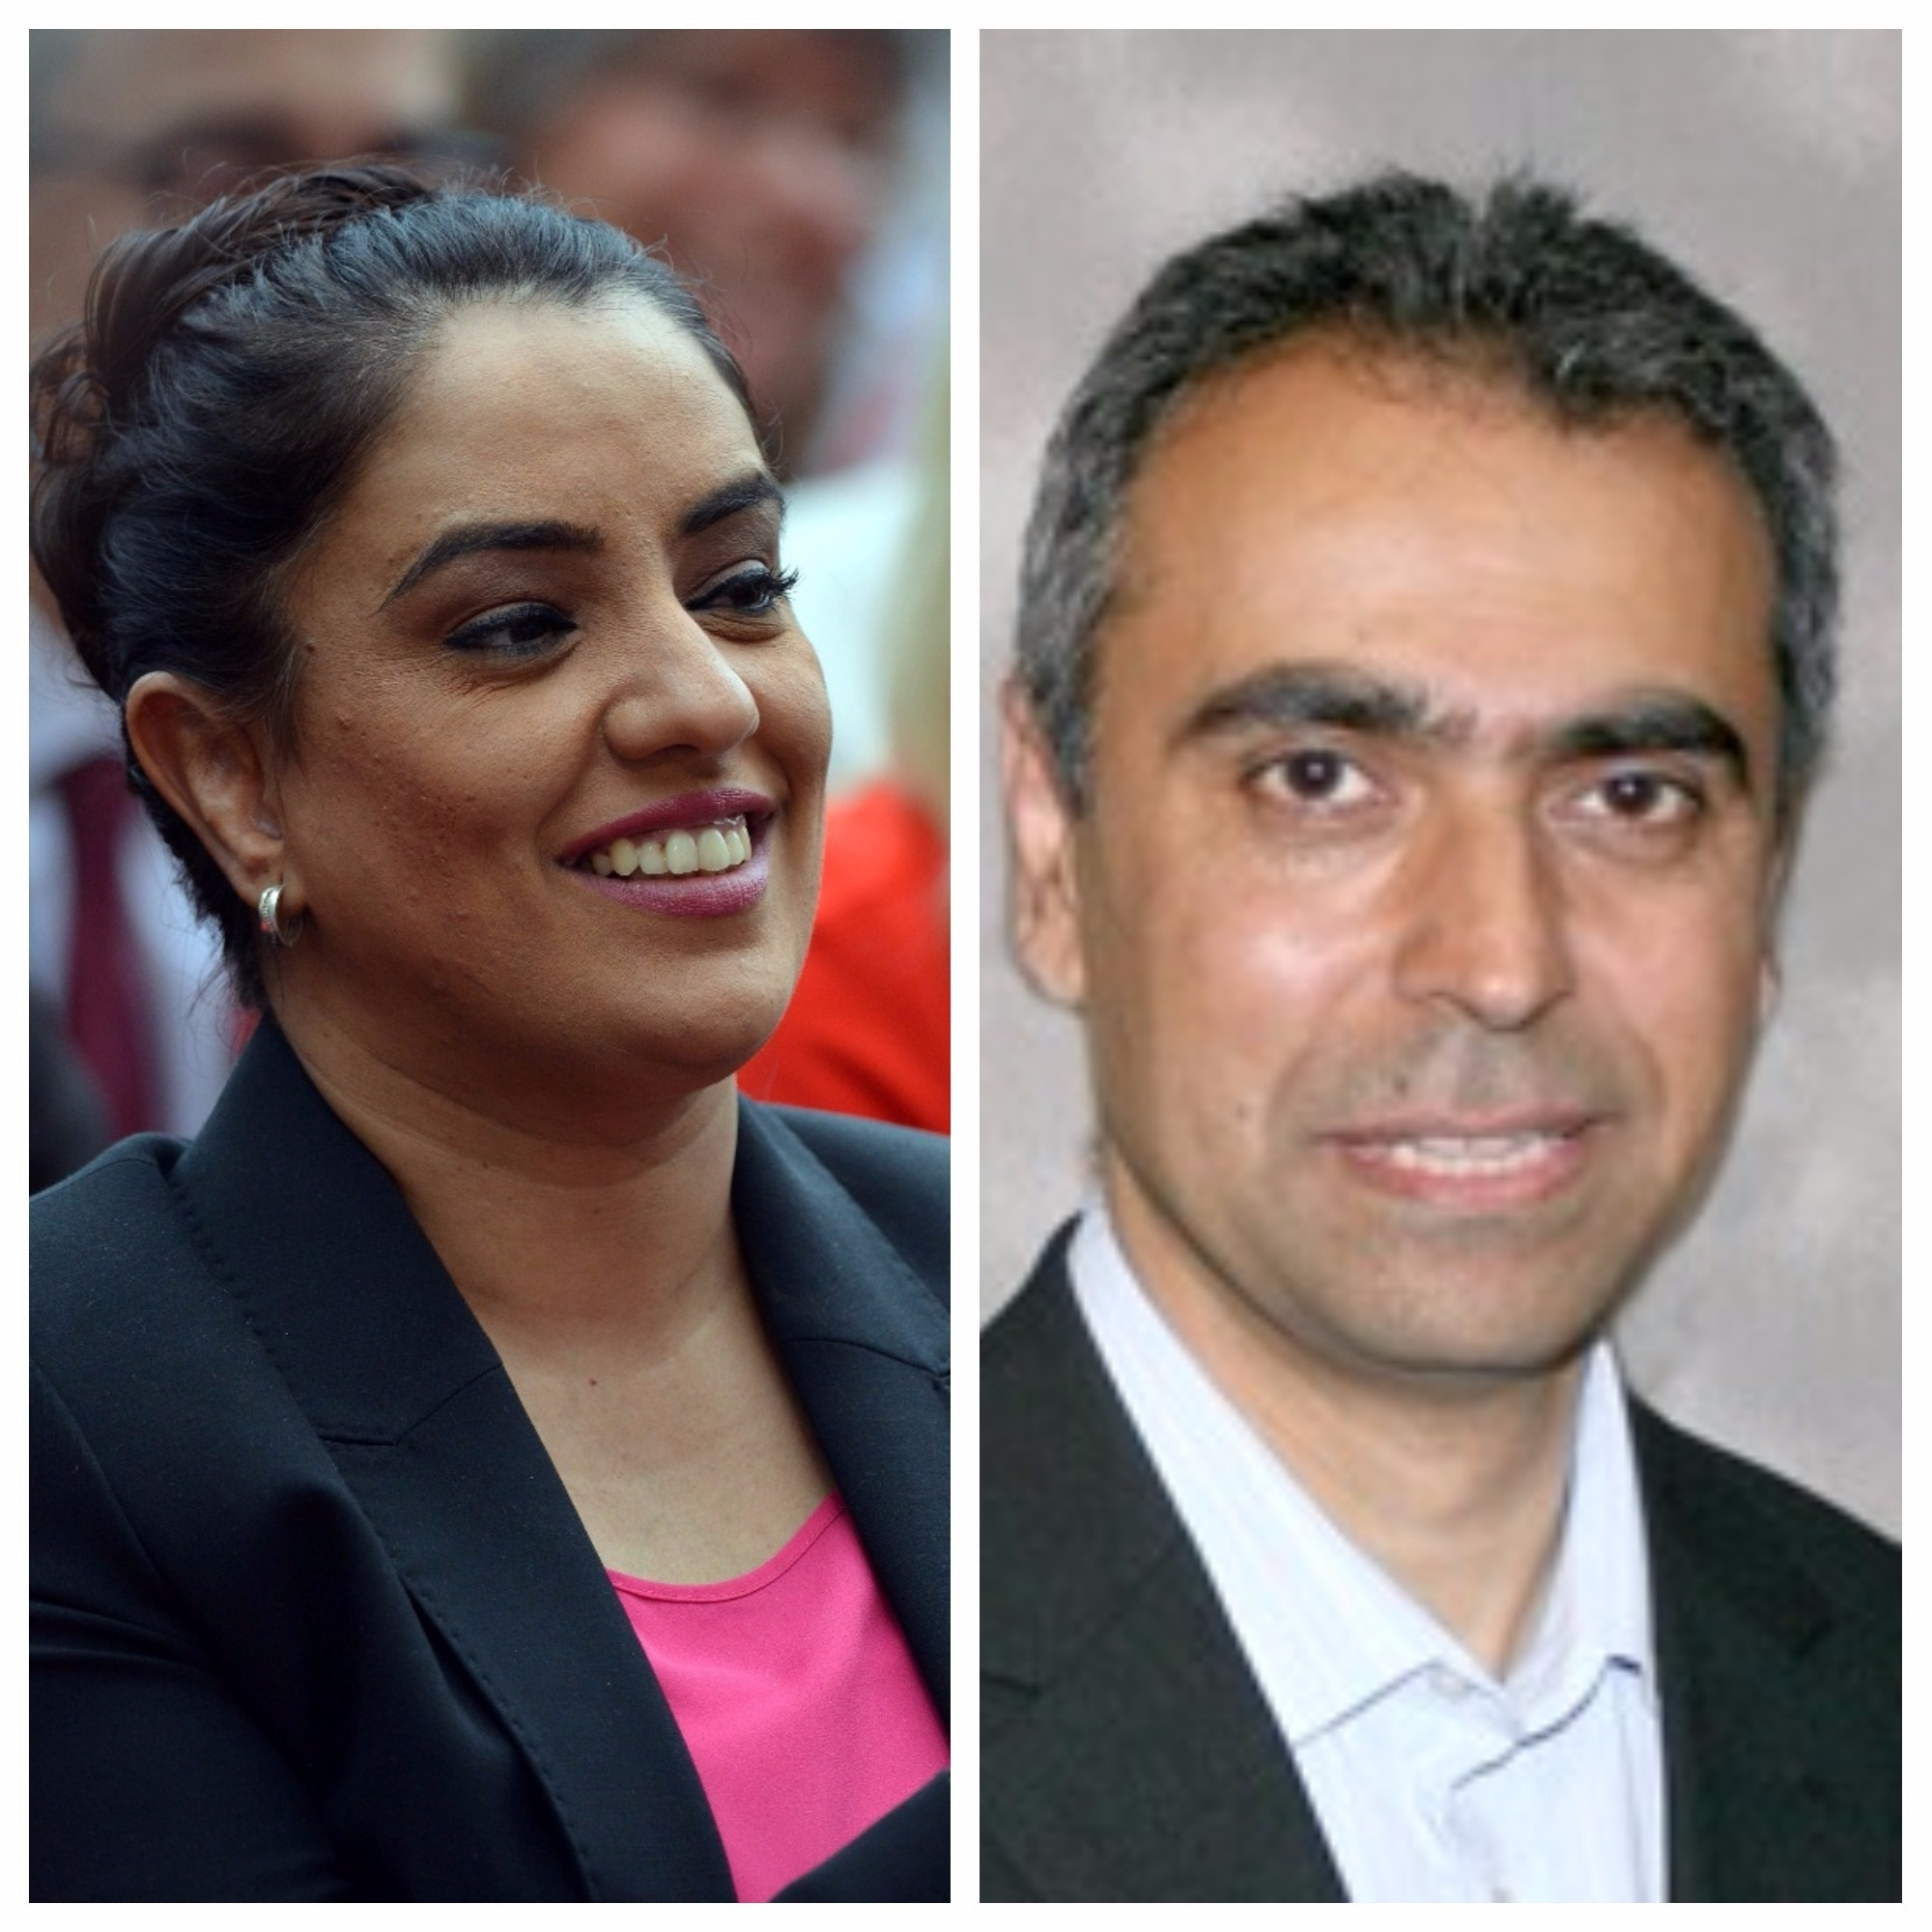 Faisal Khan, right, is one of three members to be expelled by Labour for backing a rival of Naz Shah, left, its candidate in Bradford West in the 2017 General Election